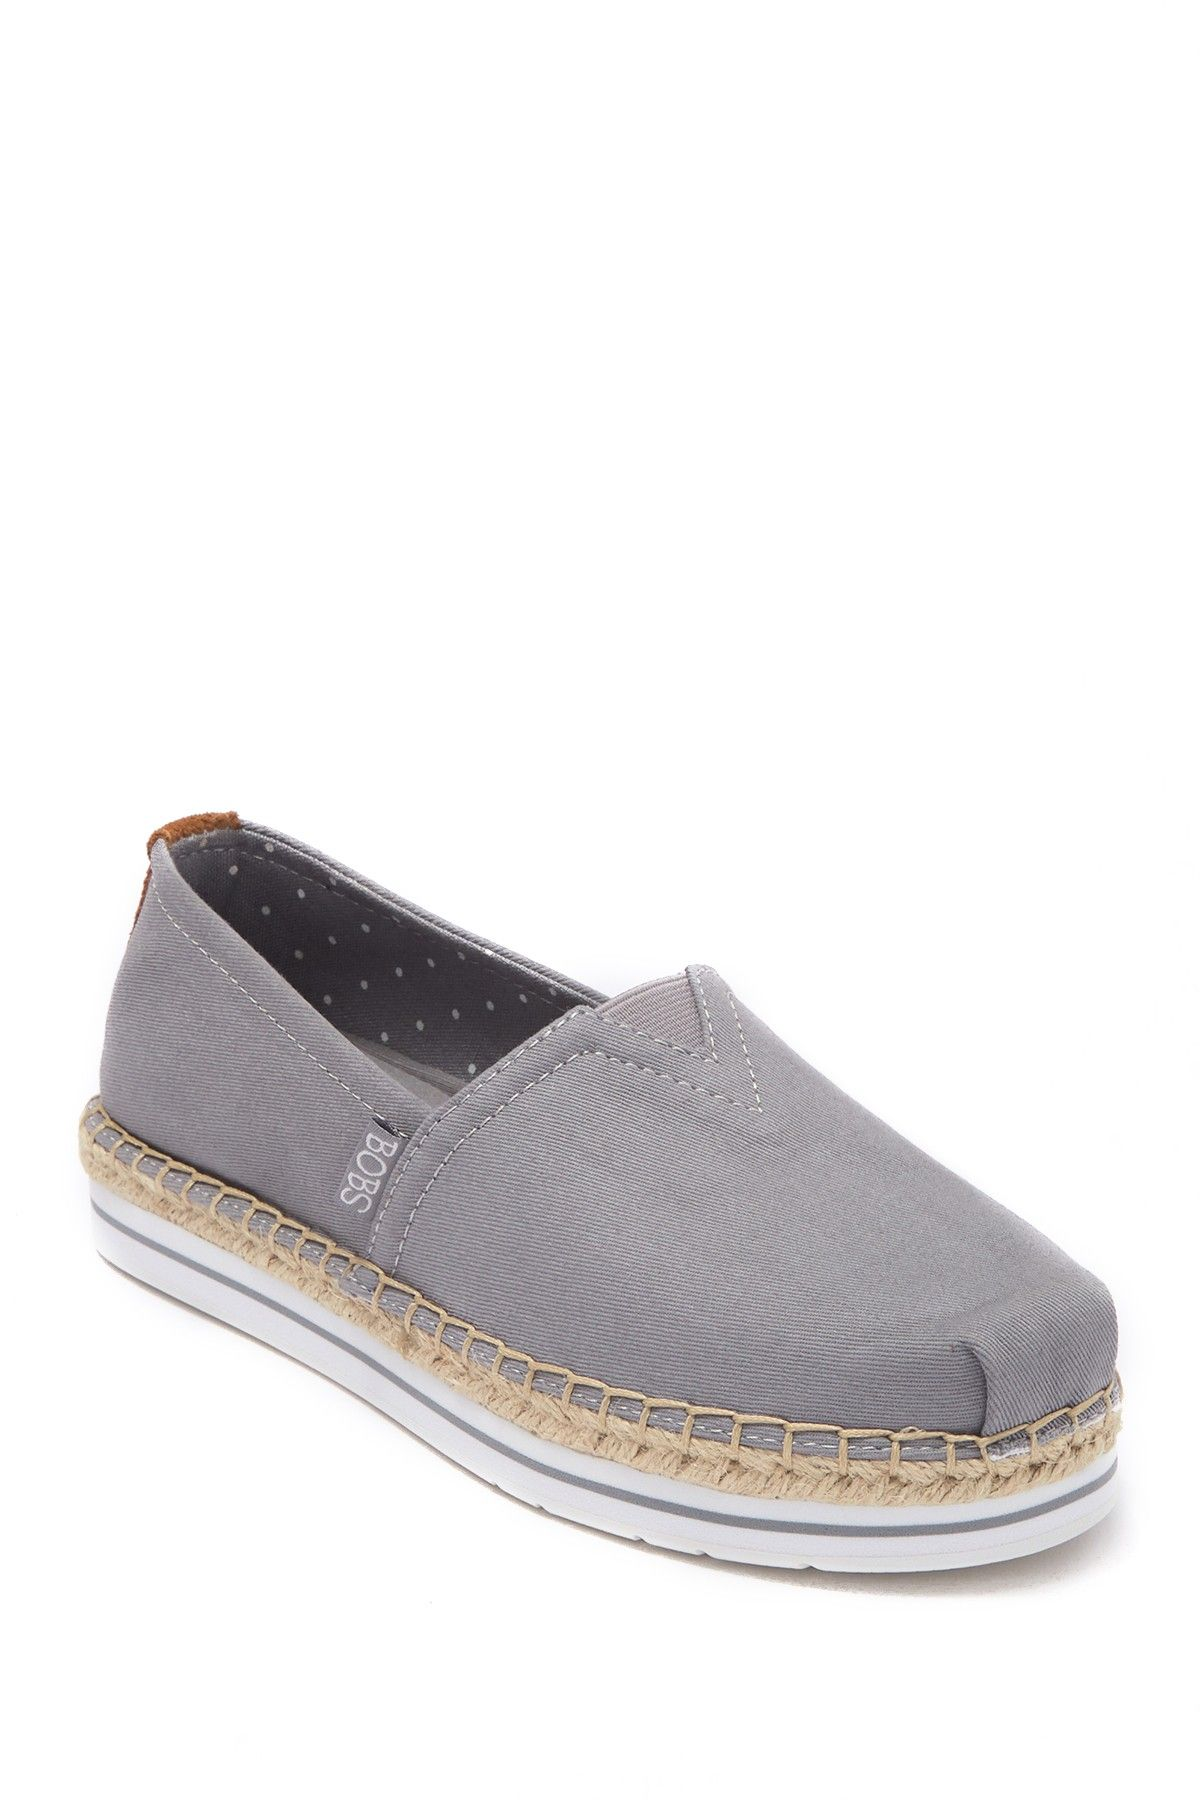 Bobs Breeze New Discovery Slip-On